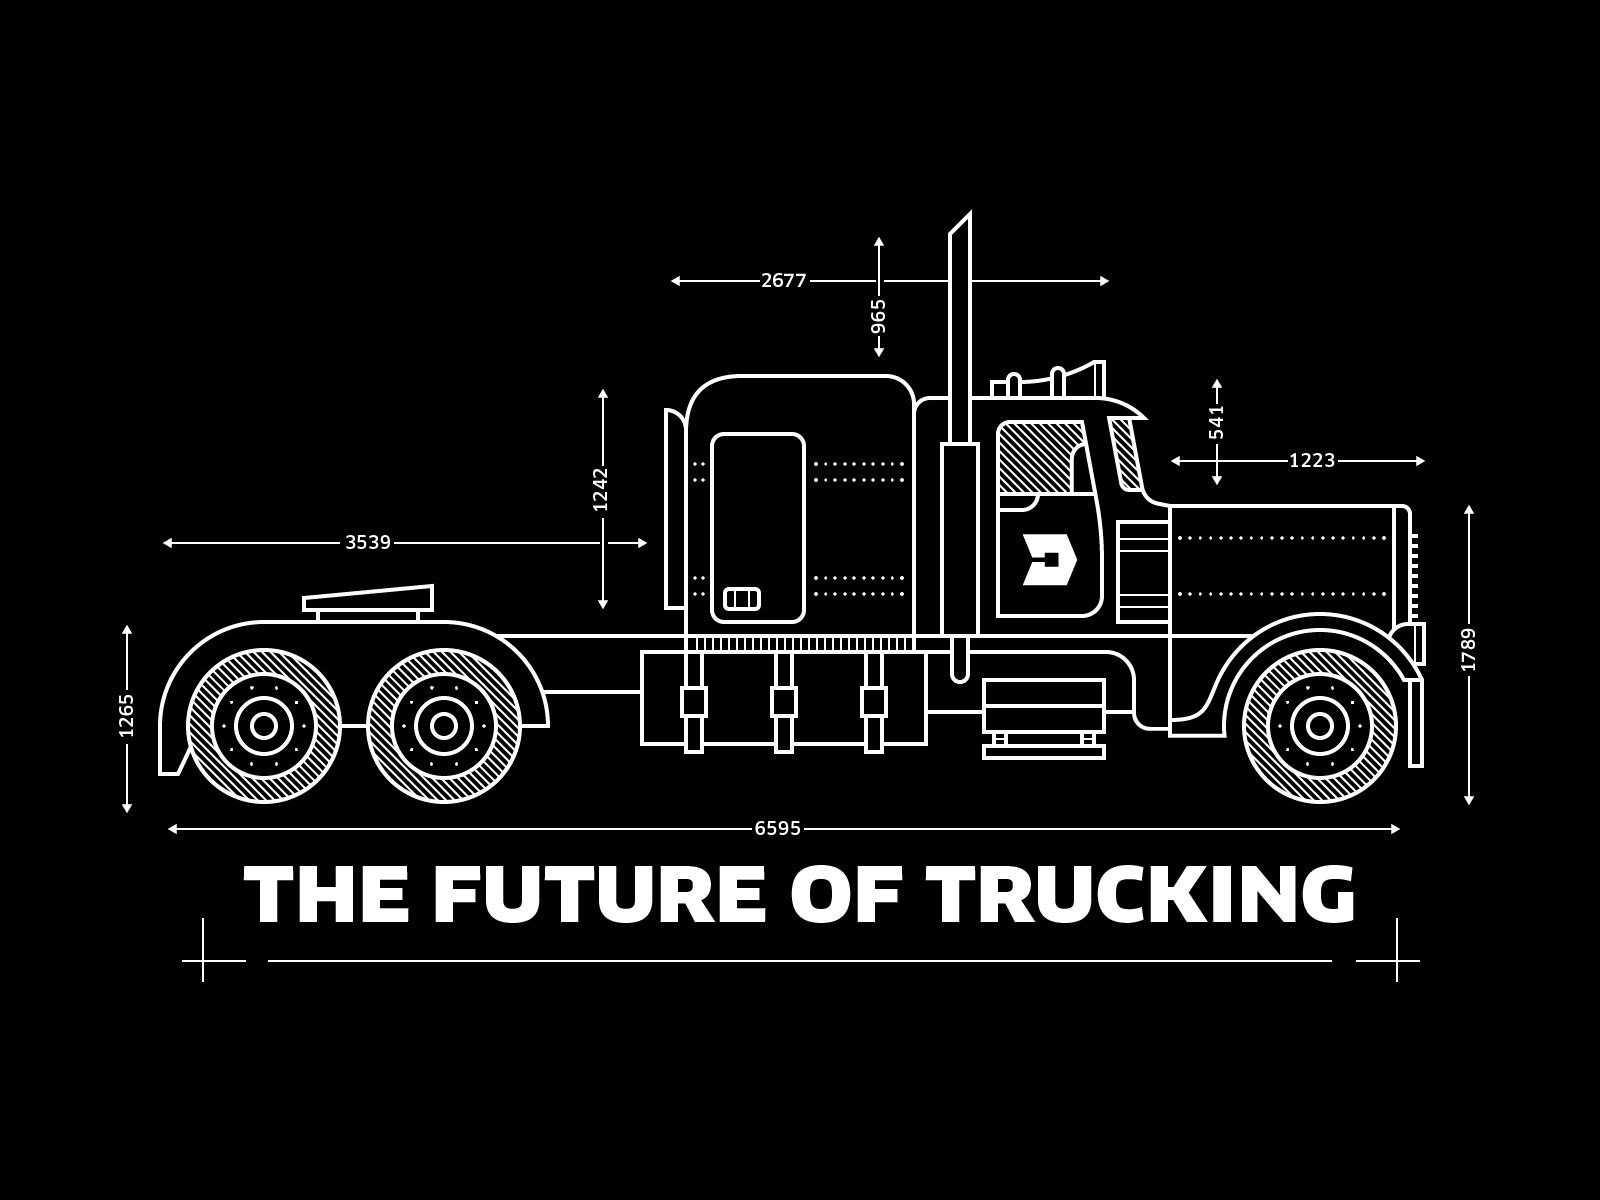 Of course when talking about the future of trucking we had to draw the prime example of truck technology.